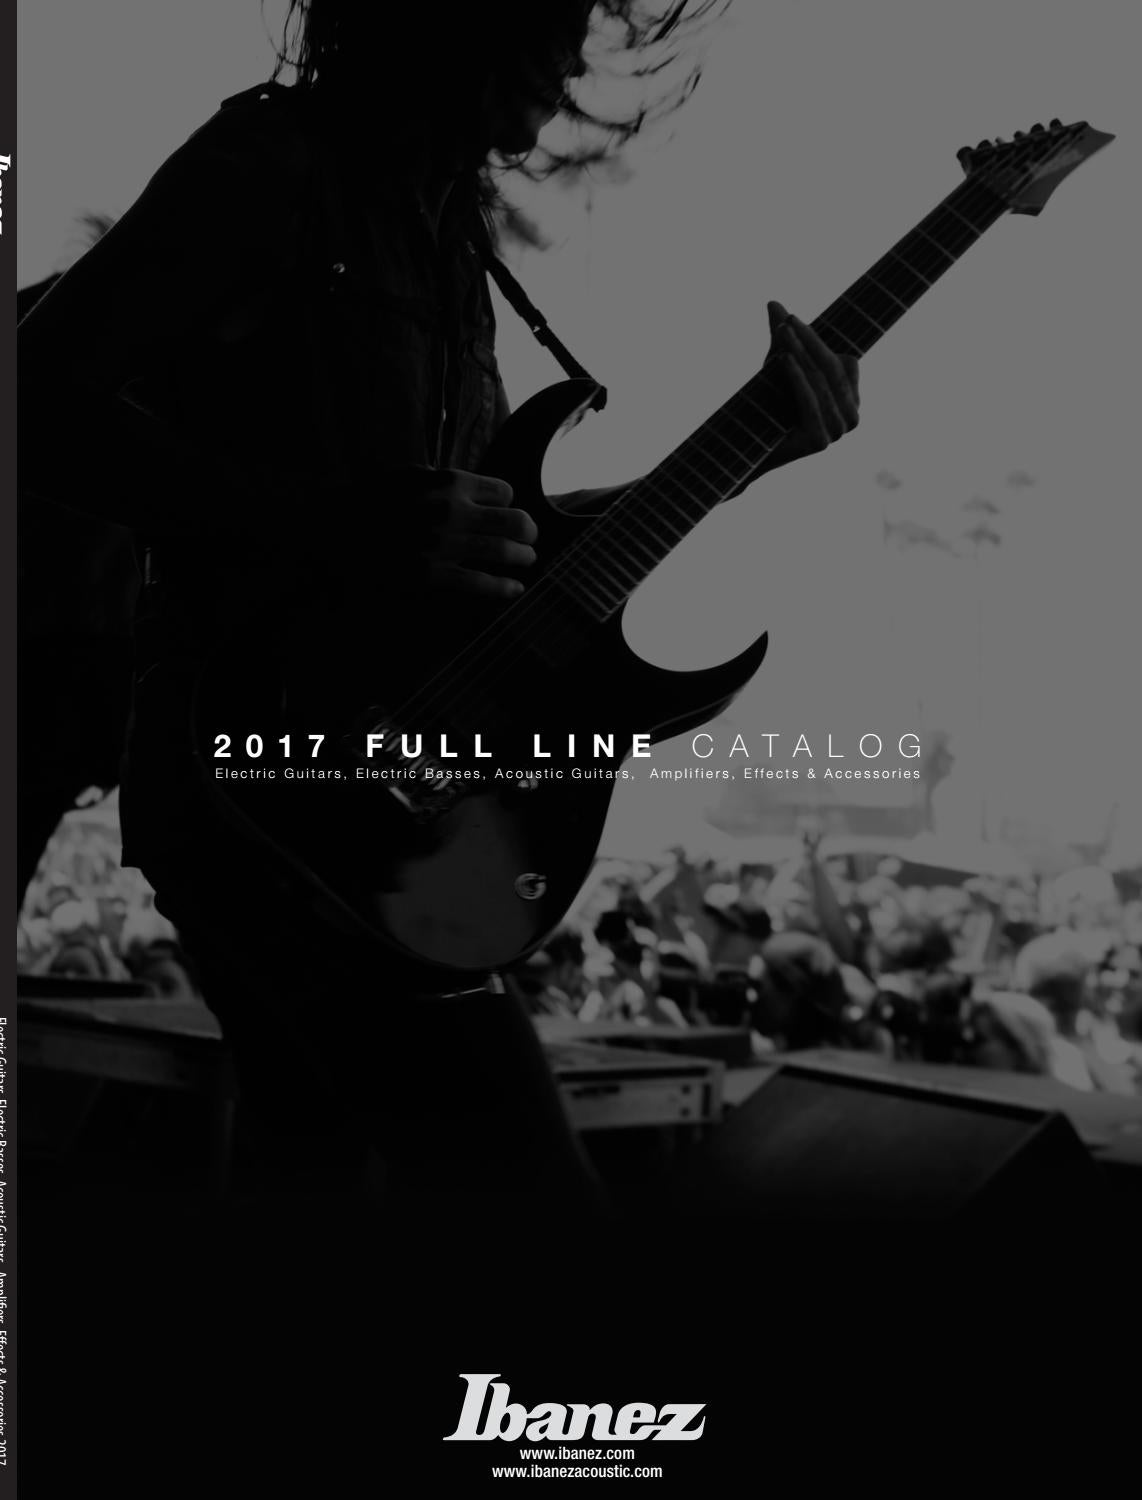 Catalogo Ibanez 2017 by Mogar Music S.p.A. - issuu